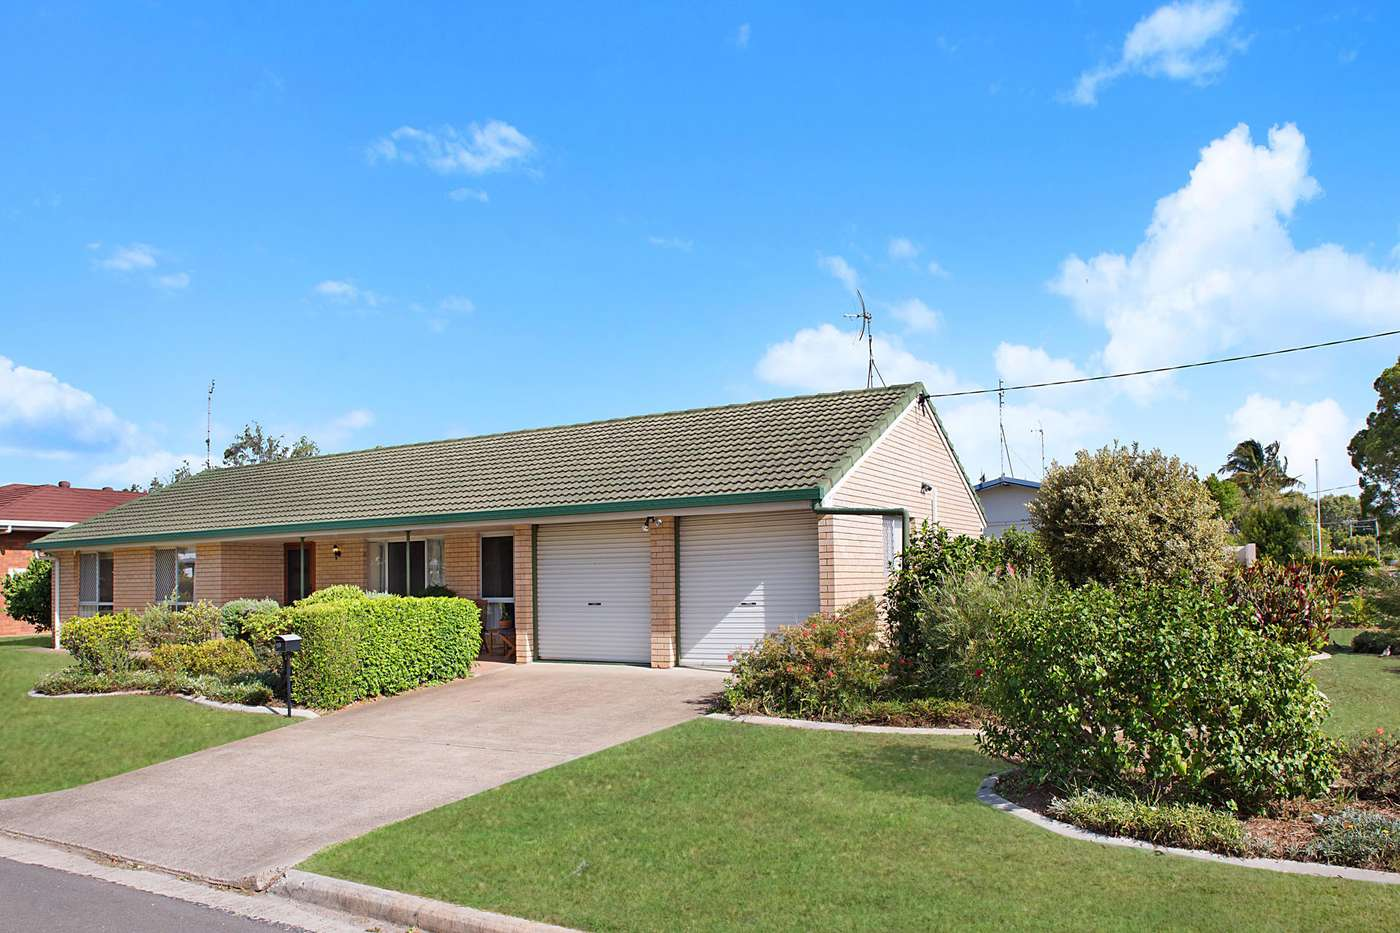 Main view of Homely house listing, 59 Wavell Avenue, Golden Beach, QLD 4551